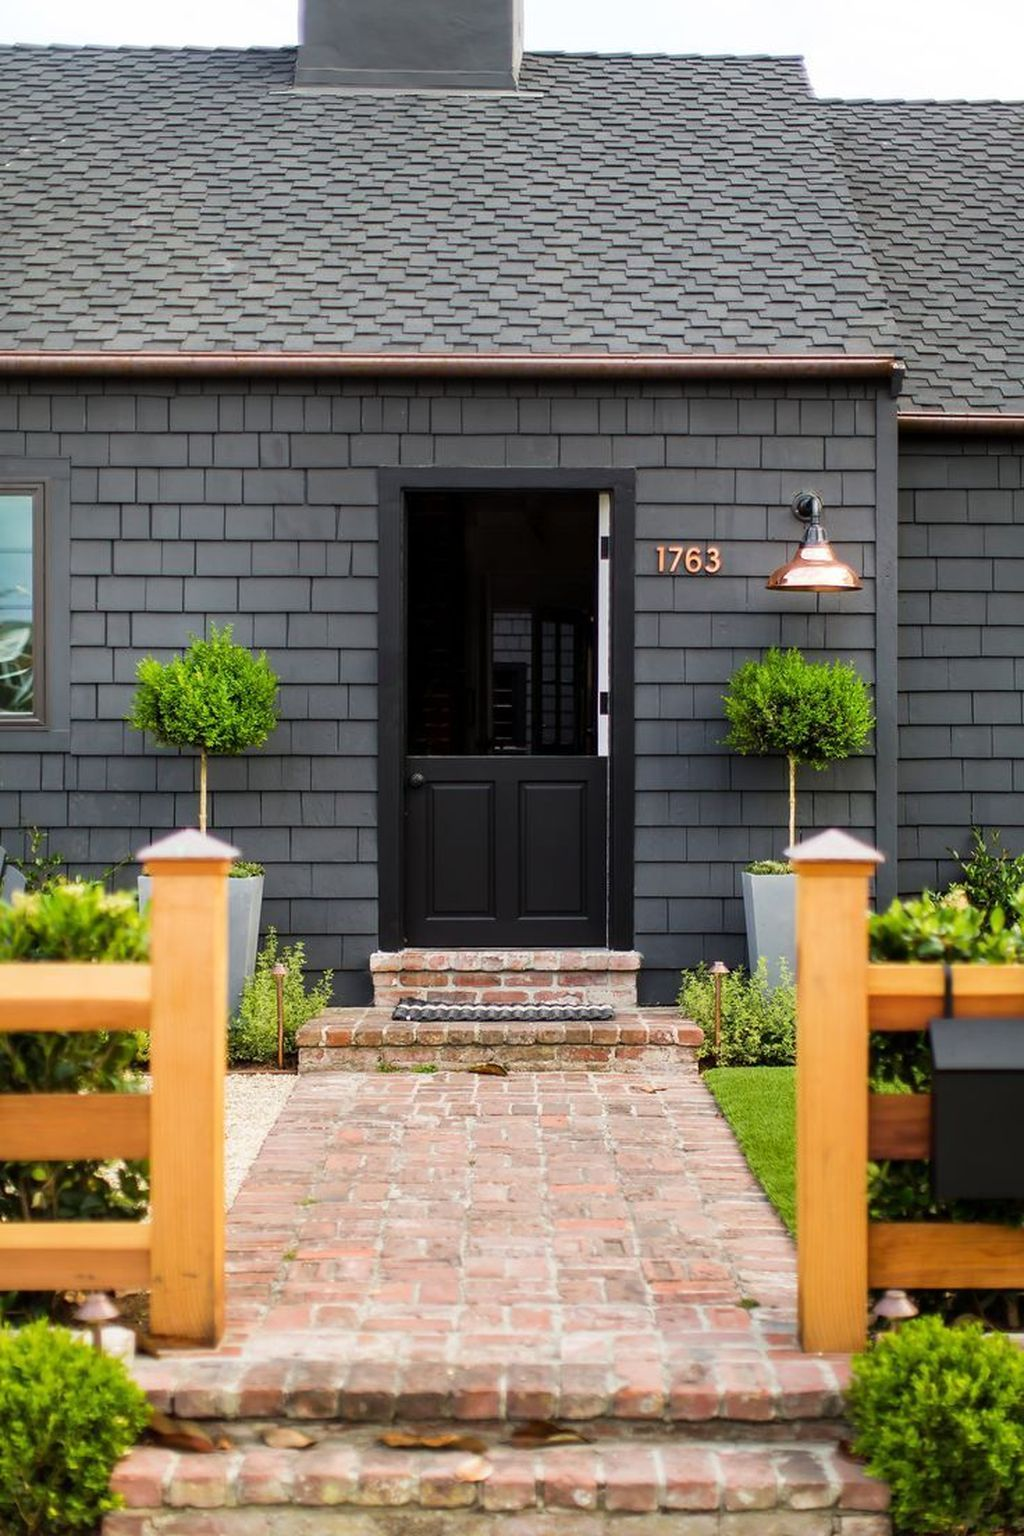 39 Modern Homes Decorating With Black Exteriors 住宅 外観 家